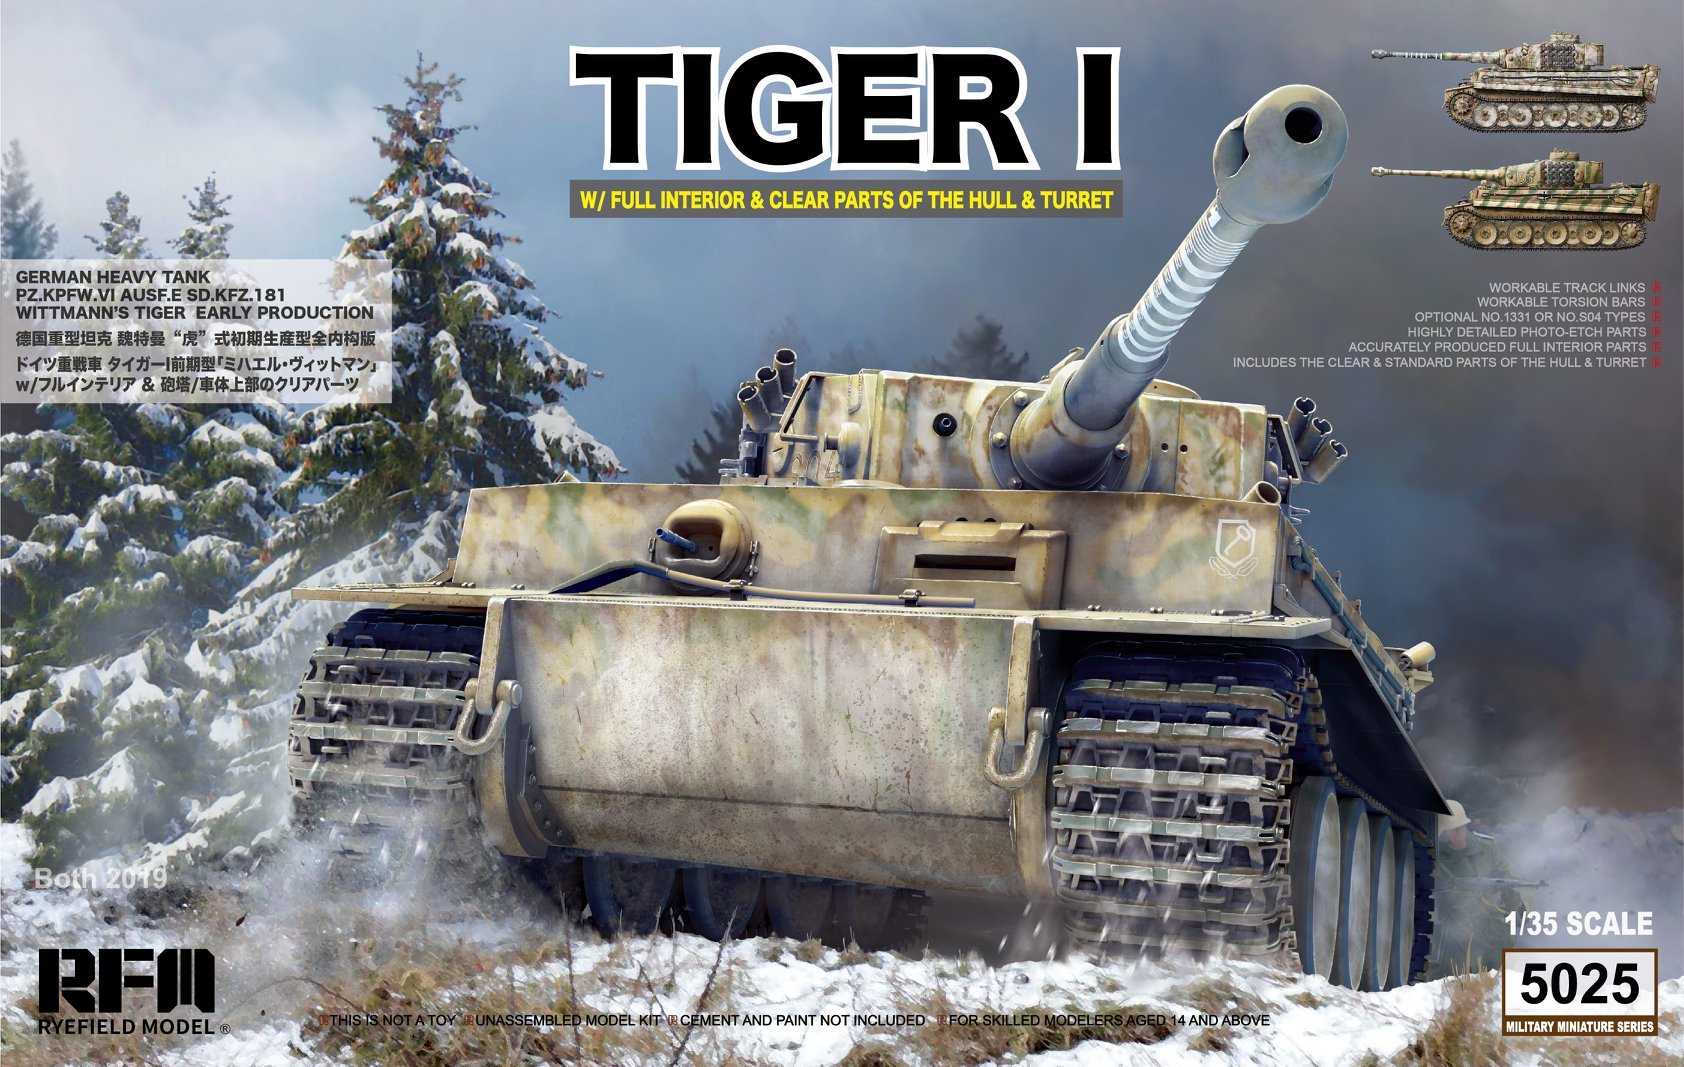 Tiger I Early w/Full Interior & Clear Parts